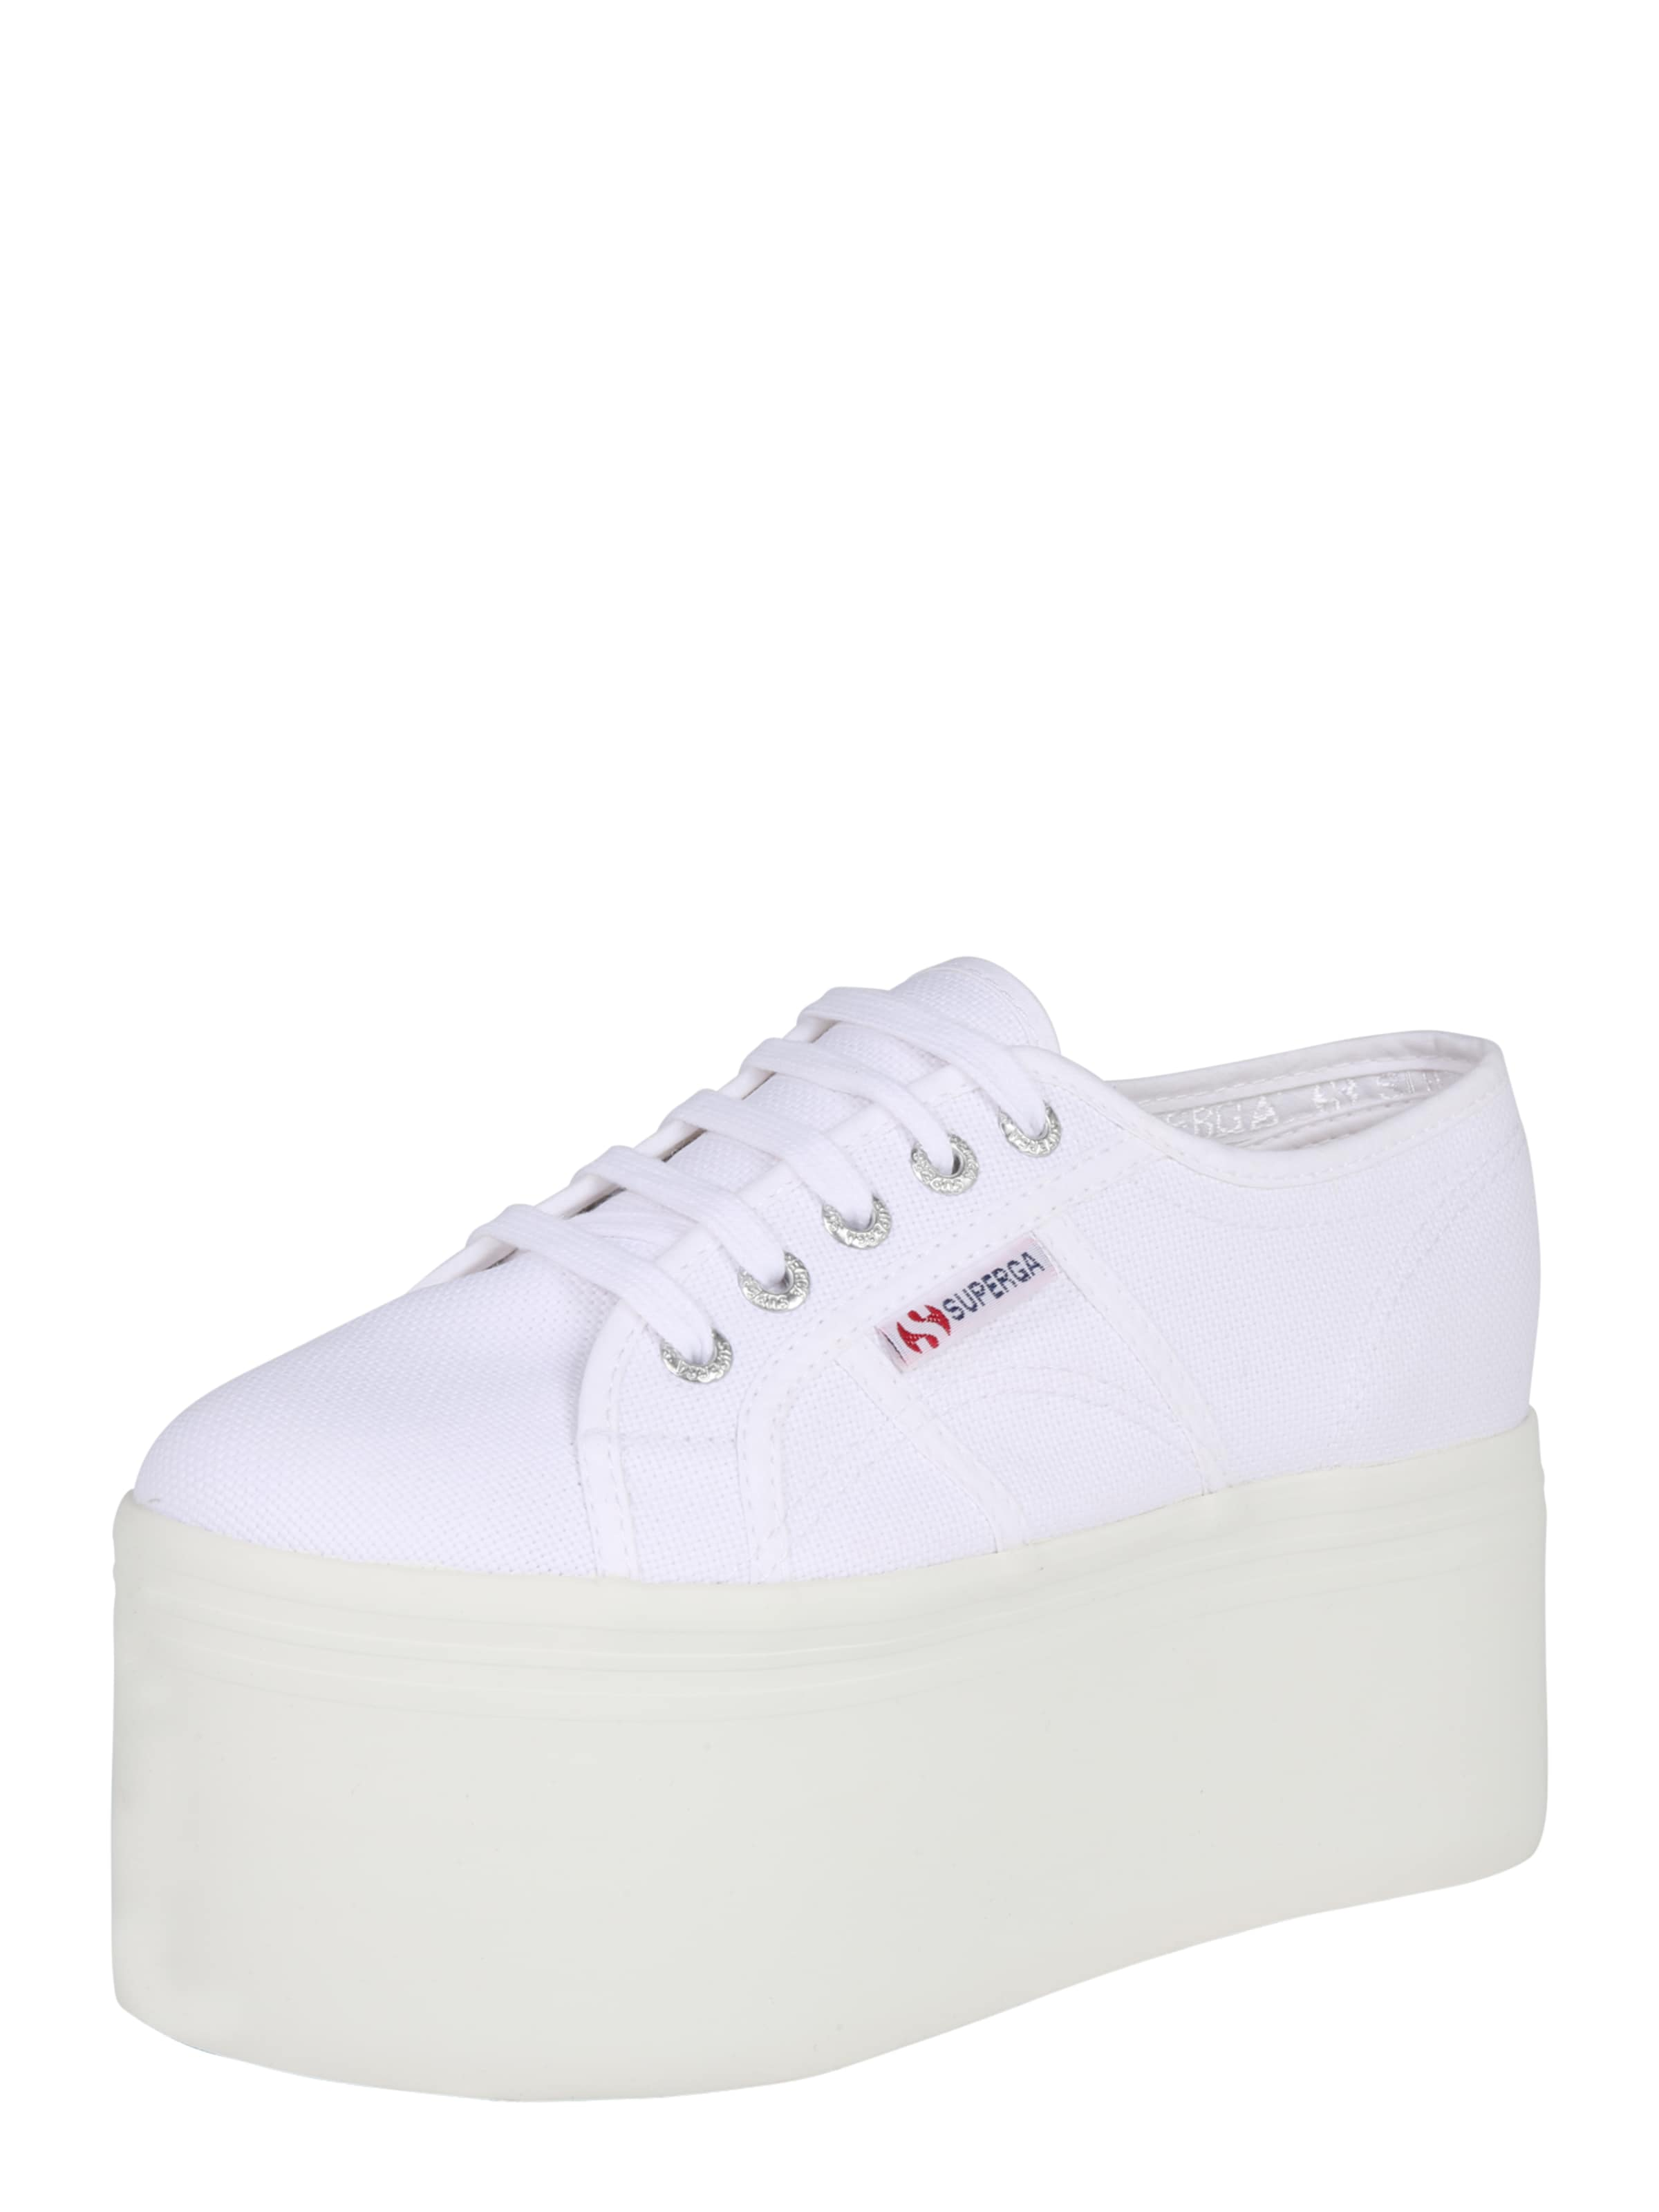 Blanc Superga En Basses '2802Cotw' Baskets vNO0wm8n